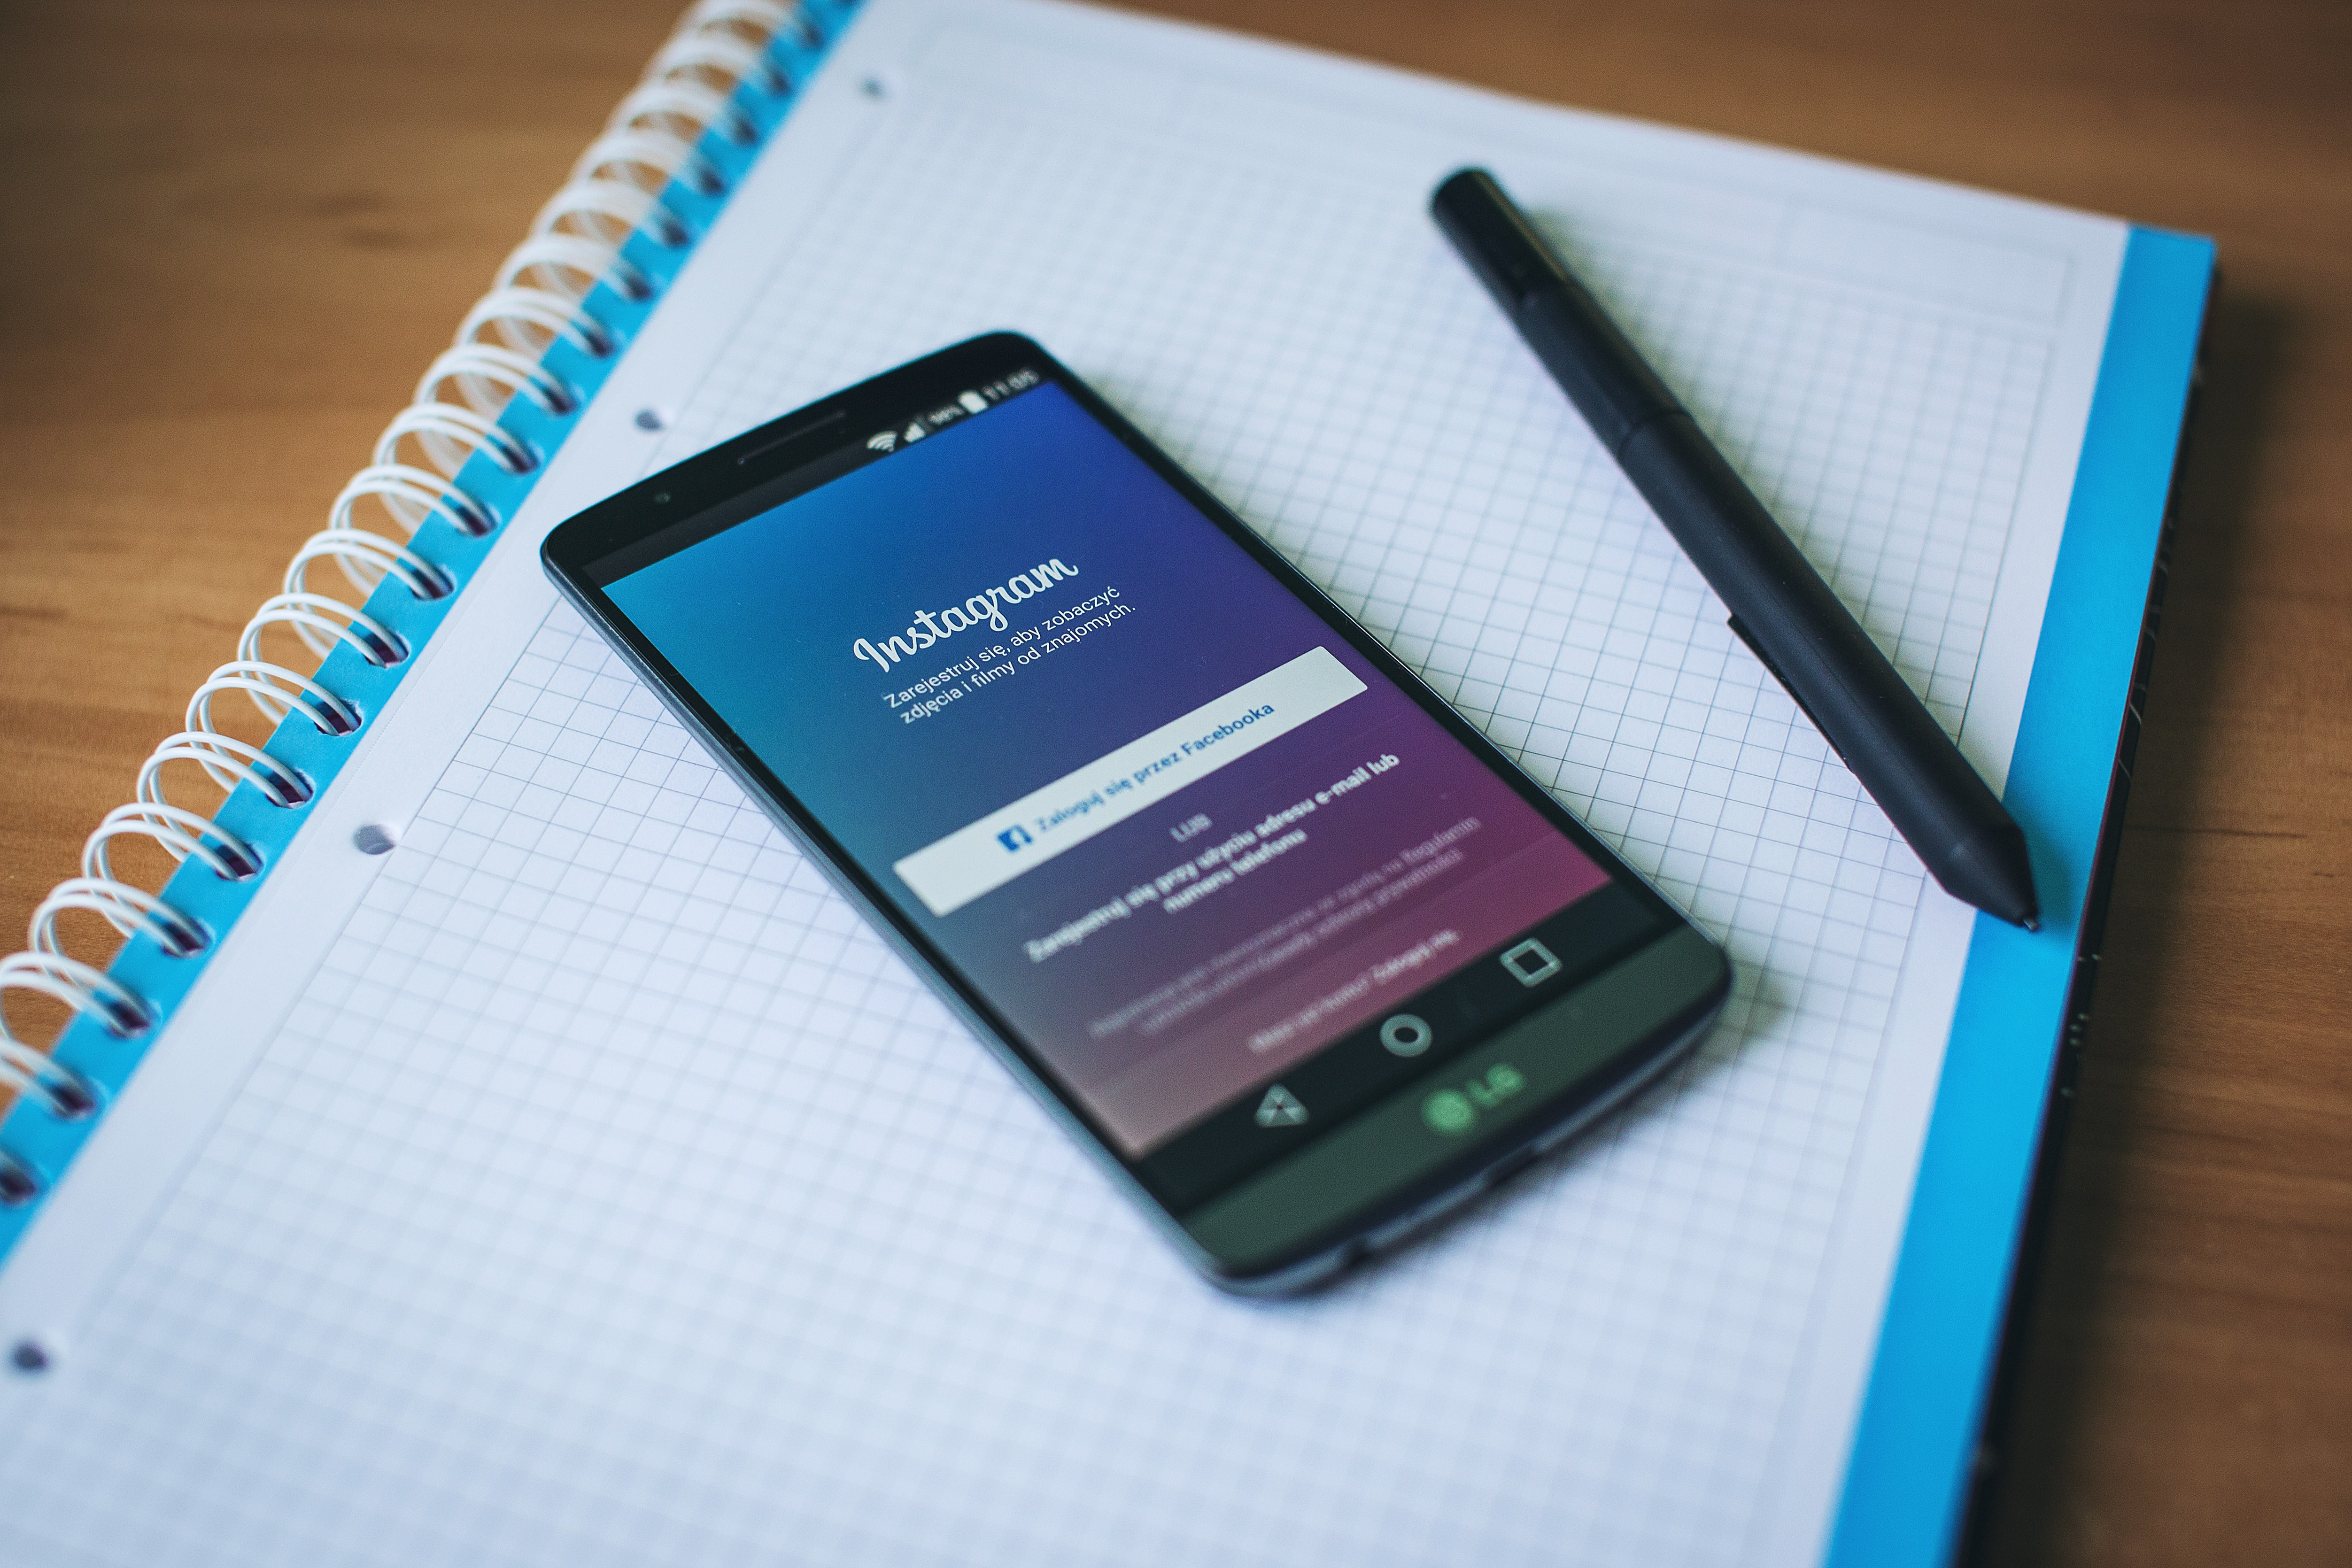 10 Must Have Social Media Tools I Can't Live Without